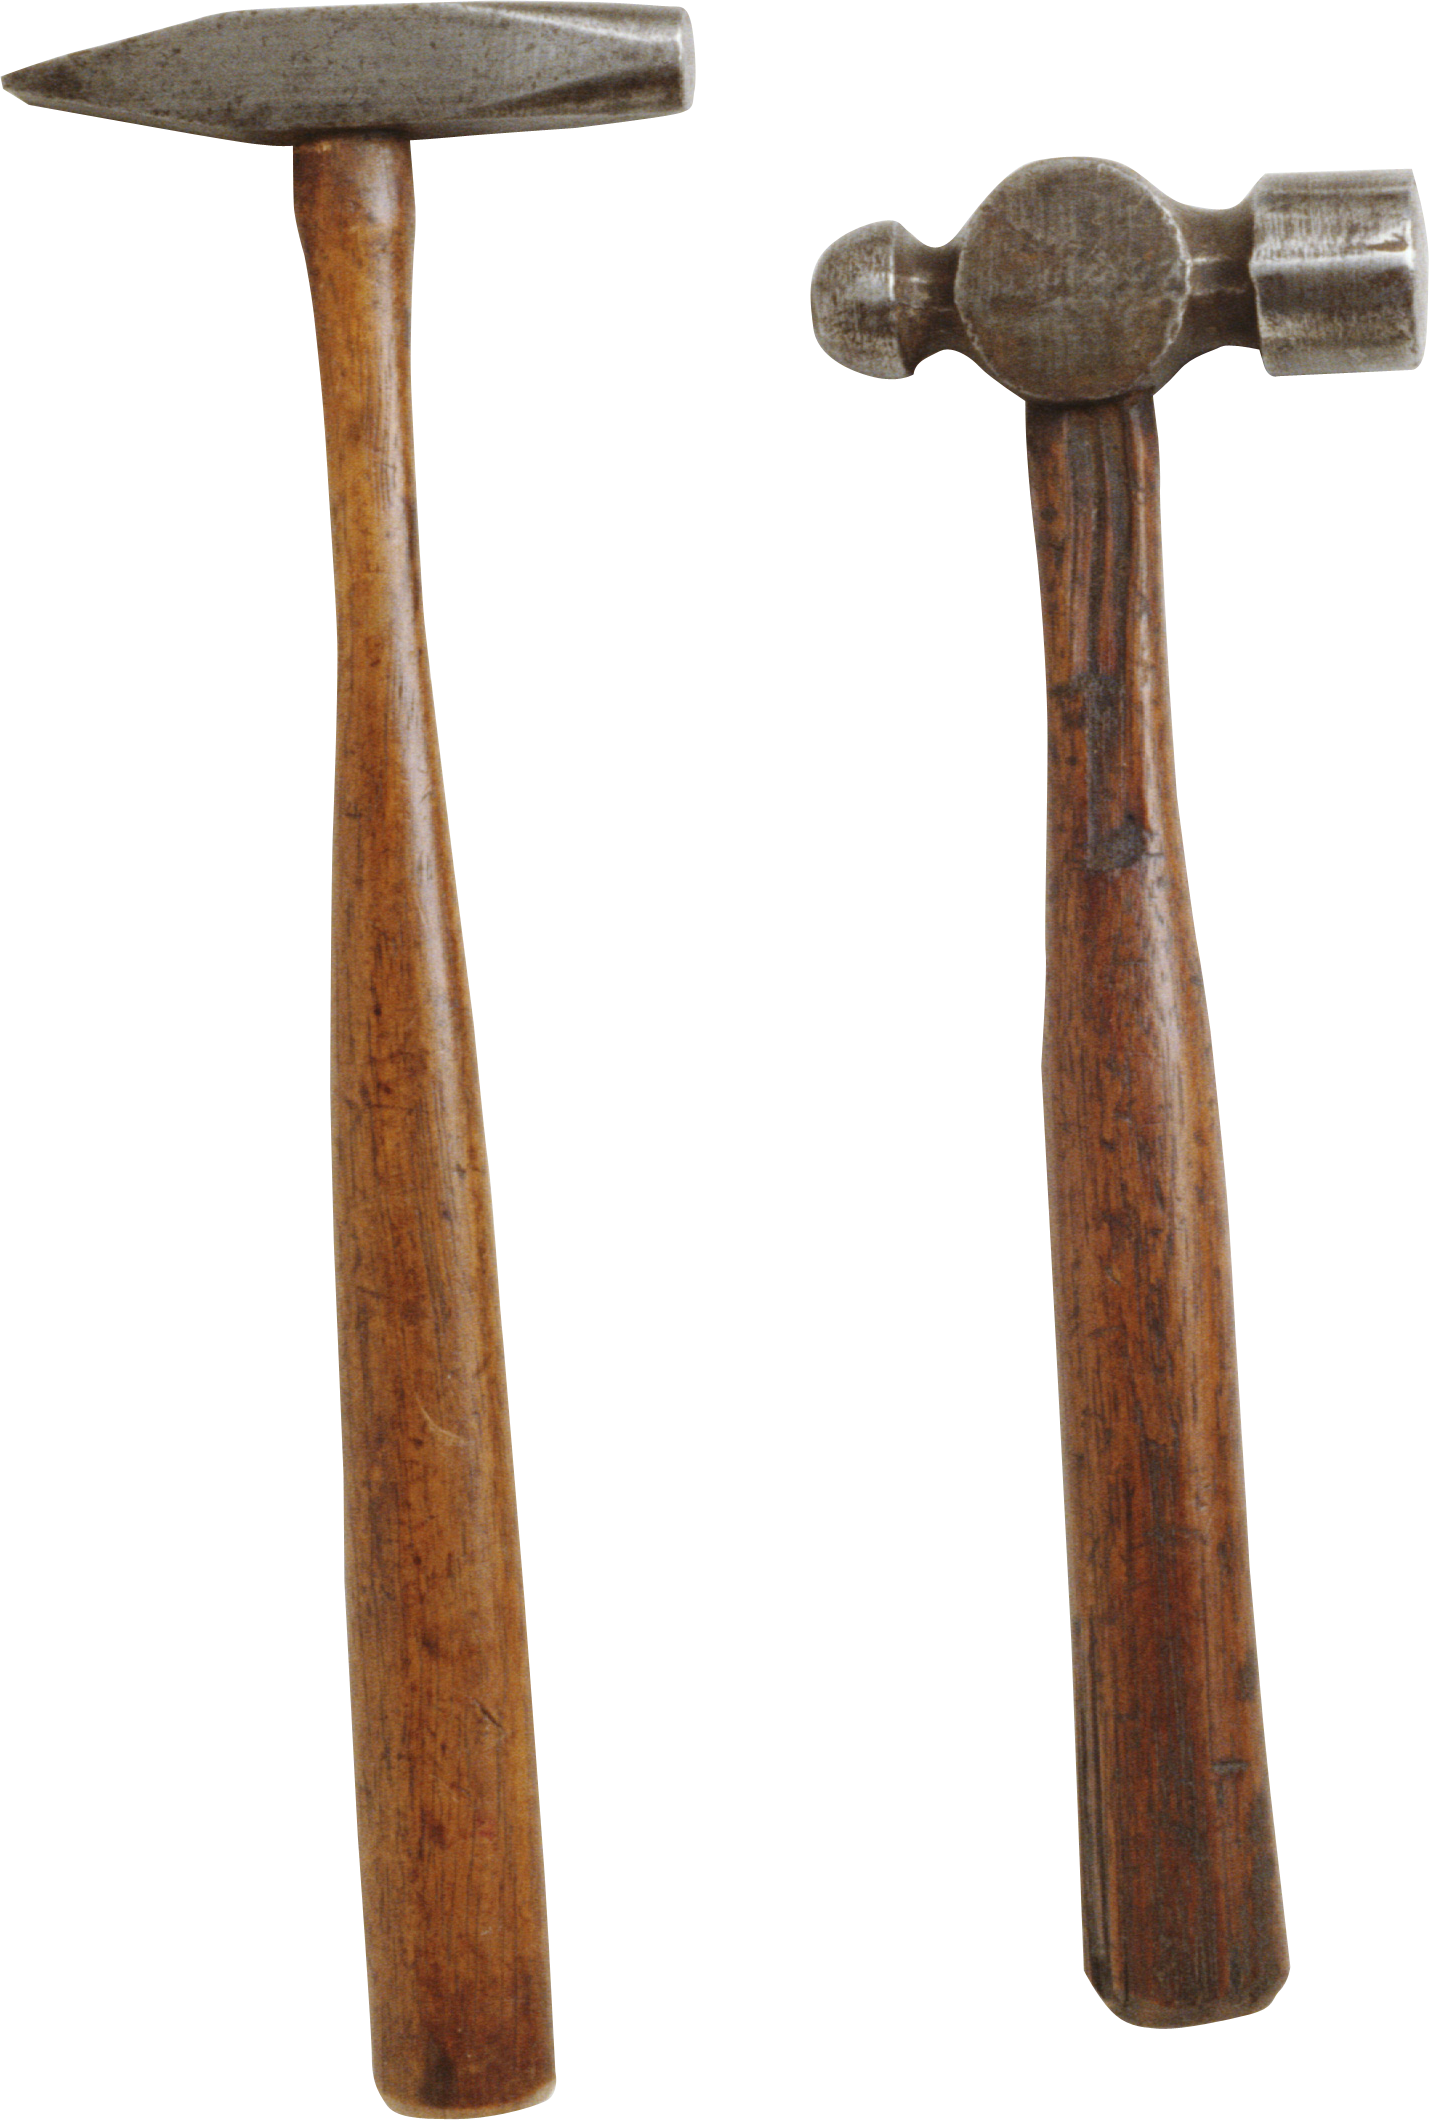 Clipart hammer old hammer. Png images free picture